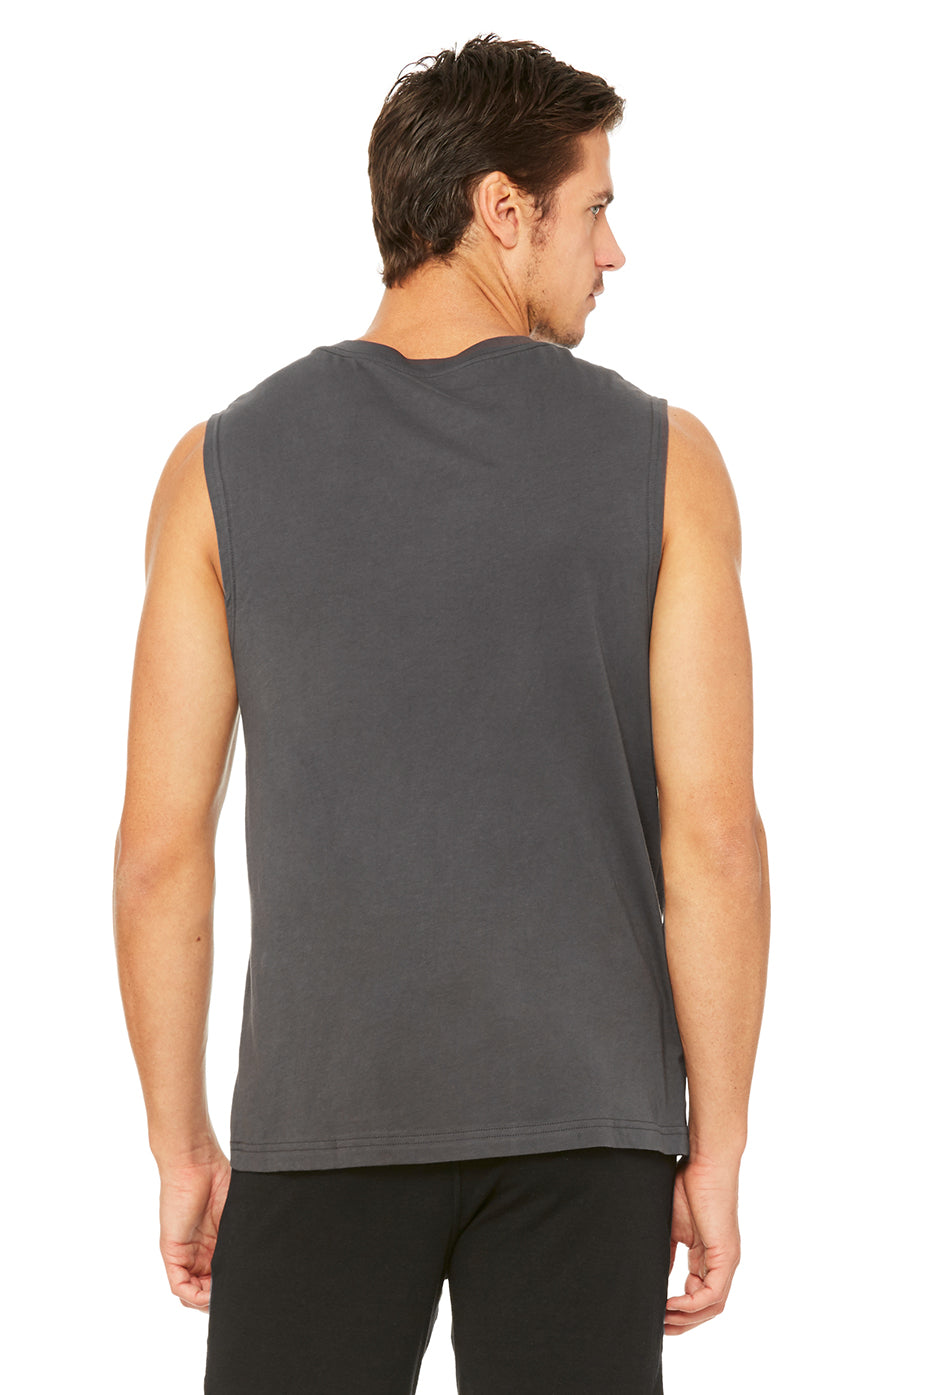 The Triumph Graphic Muscle Tank